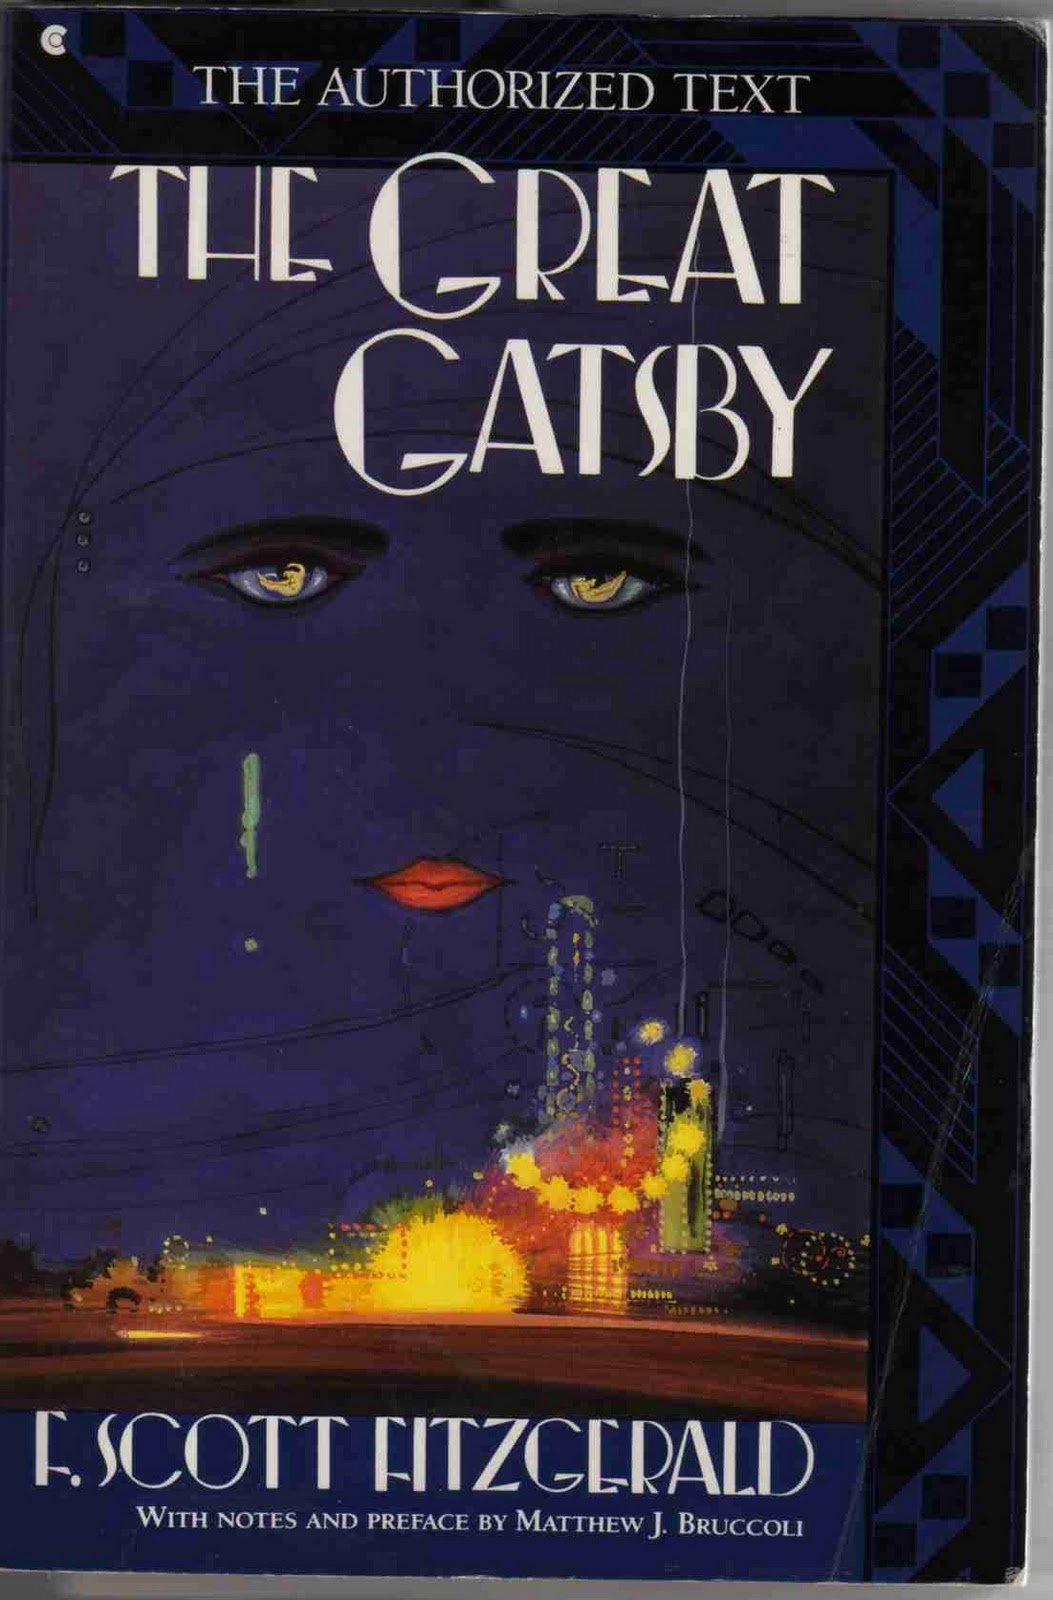 the great gatsby literary analysis essay d literary analysis essay of the great gatsby